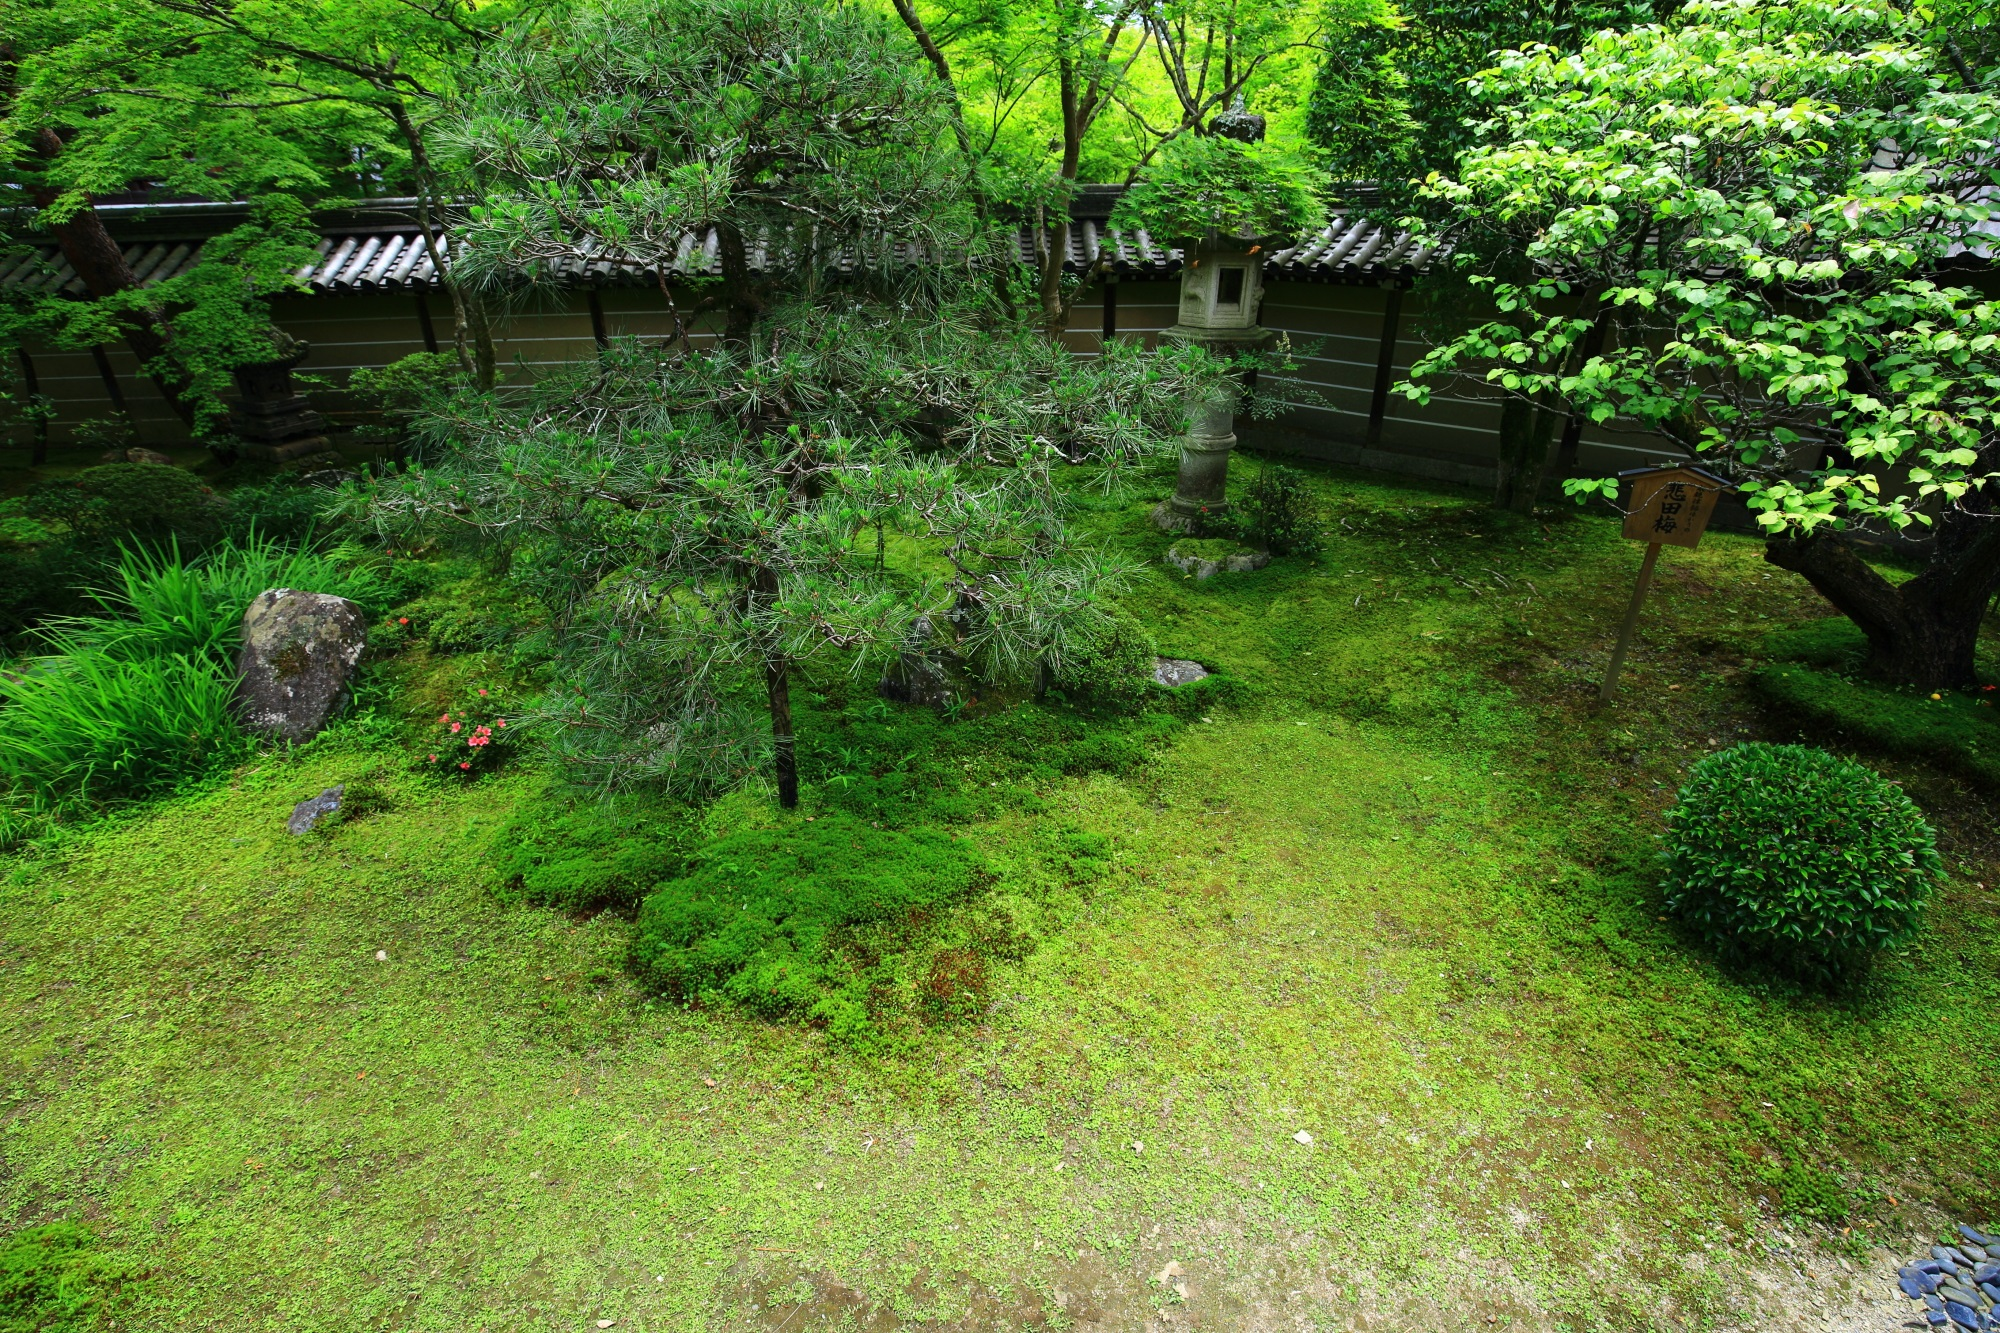 green garden Eikando-Temple in Kyoto Japan